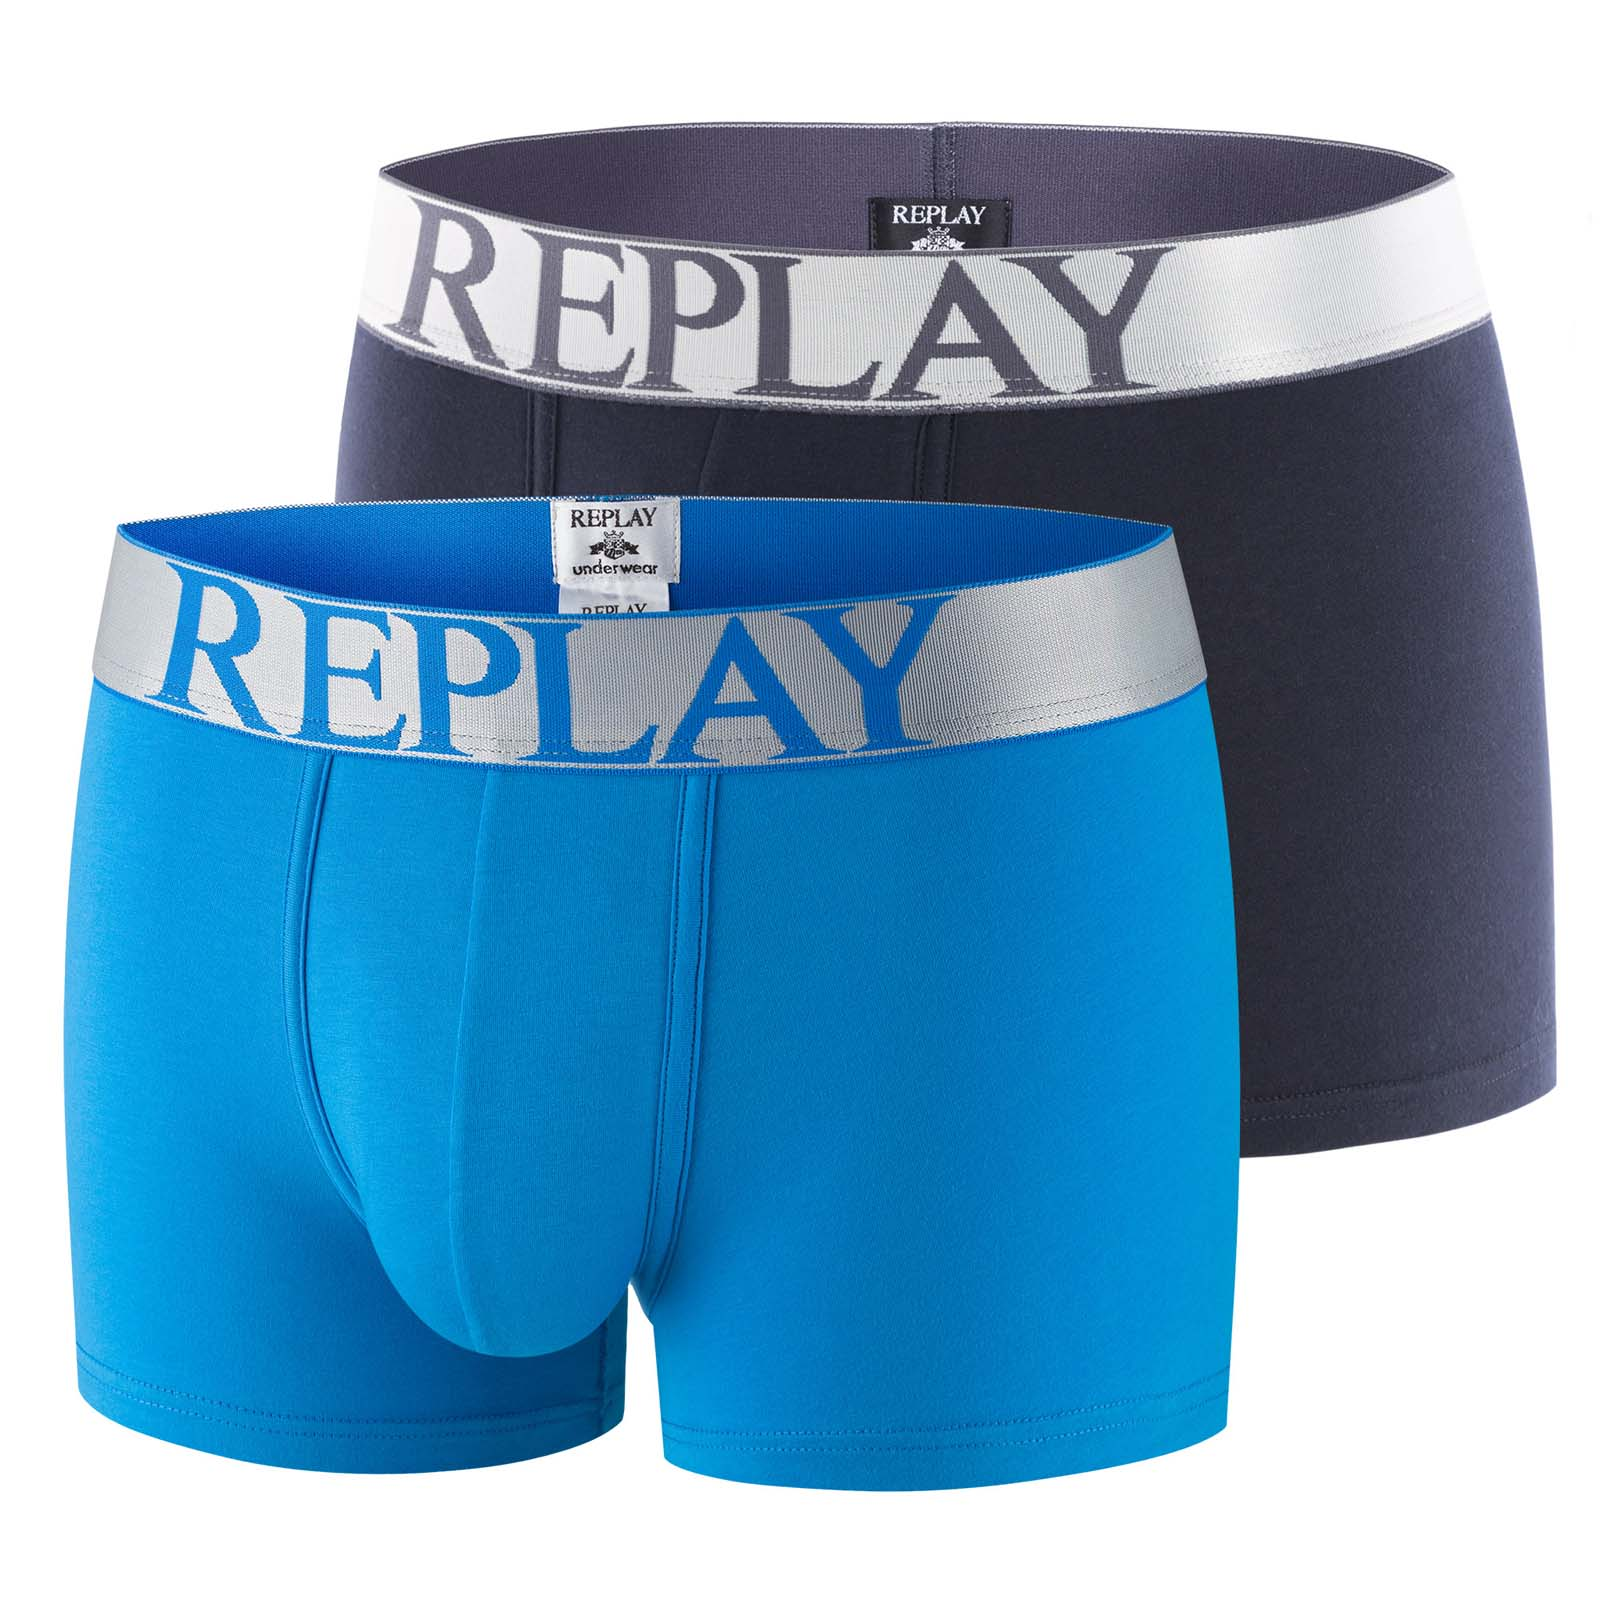 Pack of 2 Boxers briefs Replay M601152